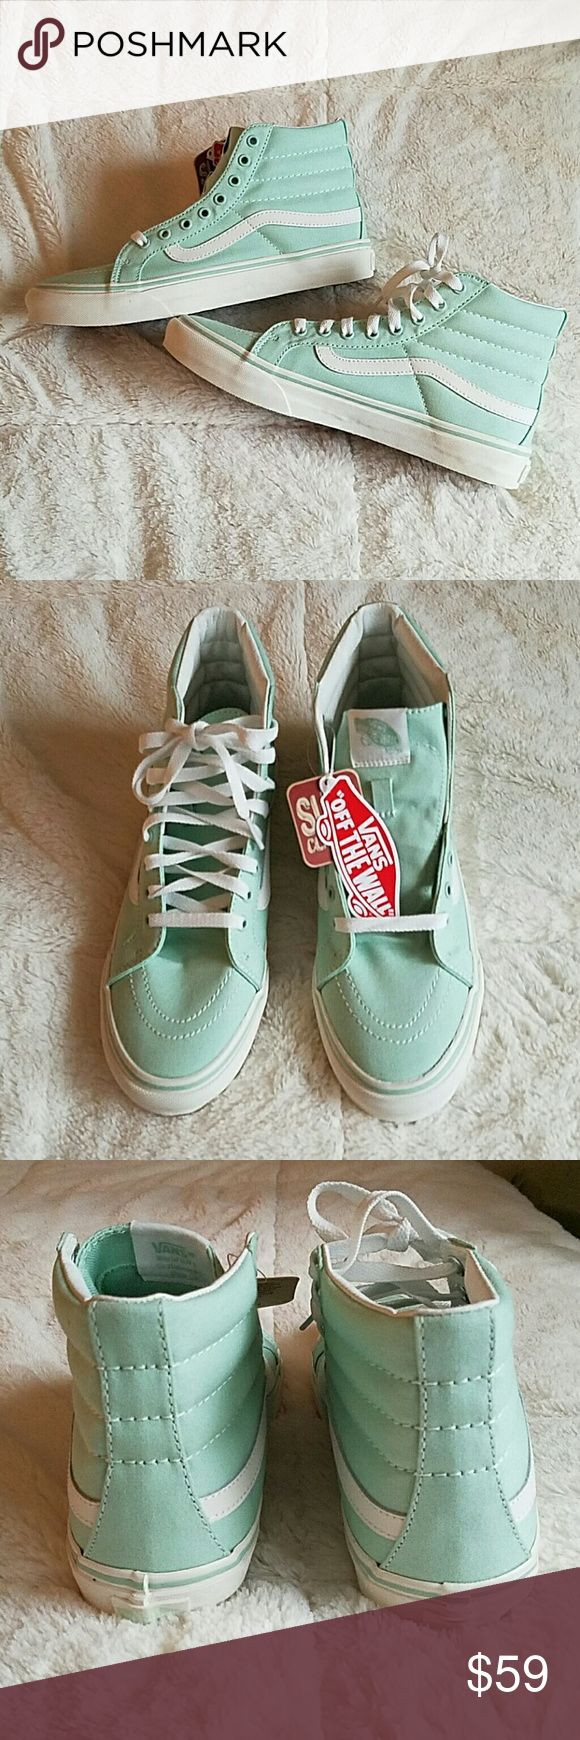 Vans High Sk8 Slim hi top sneakers These sneakers are brand new, never worn! Turns out I wear a size 7, these are 7 and 1/2. Such a cute mint green color with white details. These shoes are so stylish and feminine, they go with everything! You can dress them up or down and be comfortable whatever you're doing. Please ask all questions and review photos carefully as I don't accept returns ? Vans Shoes Sneakers